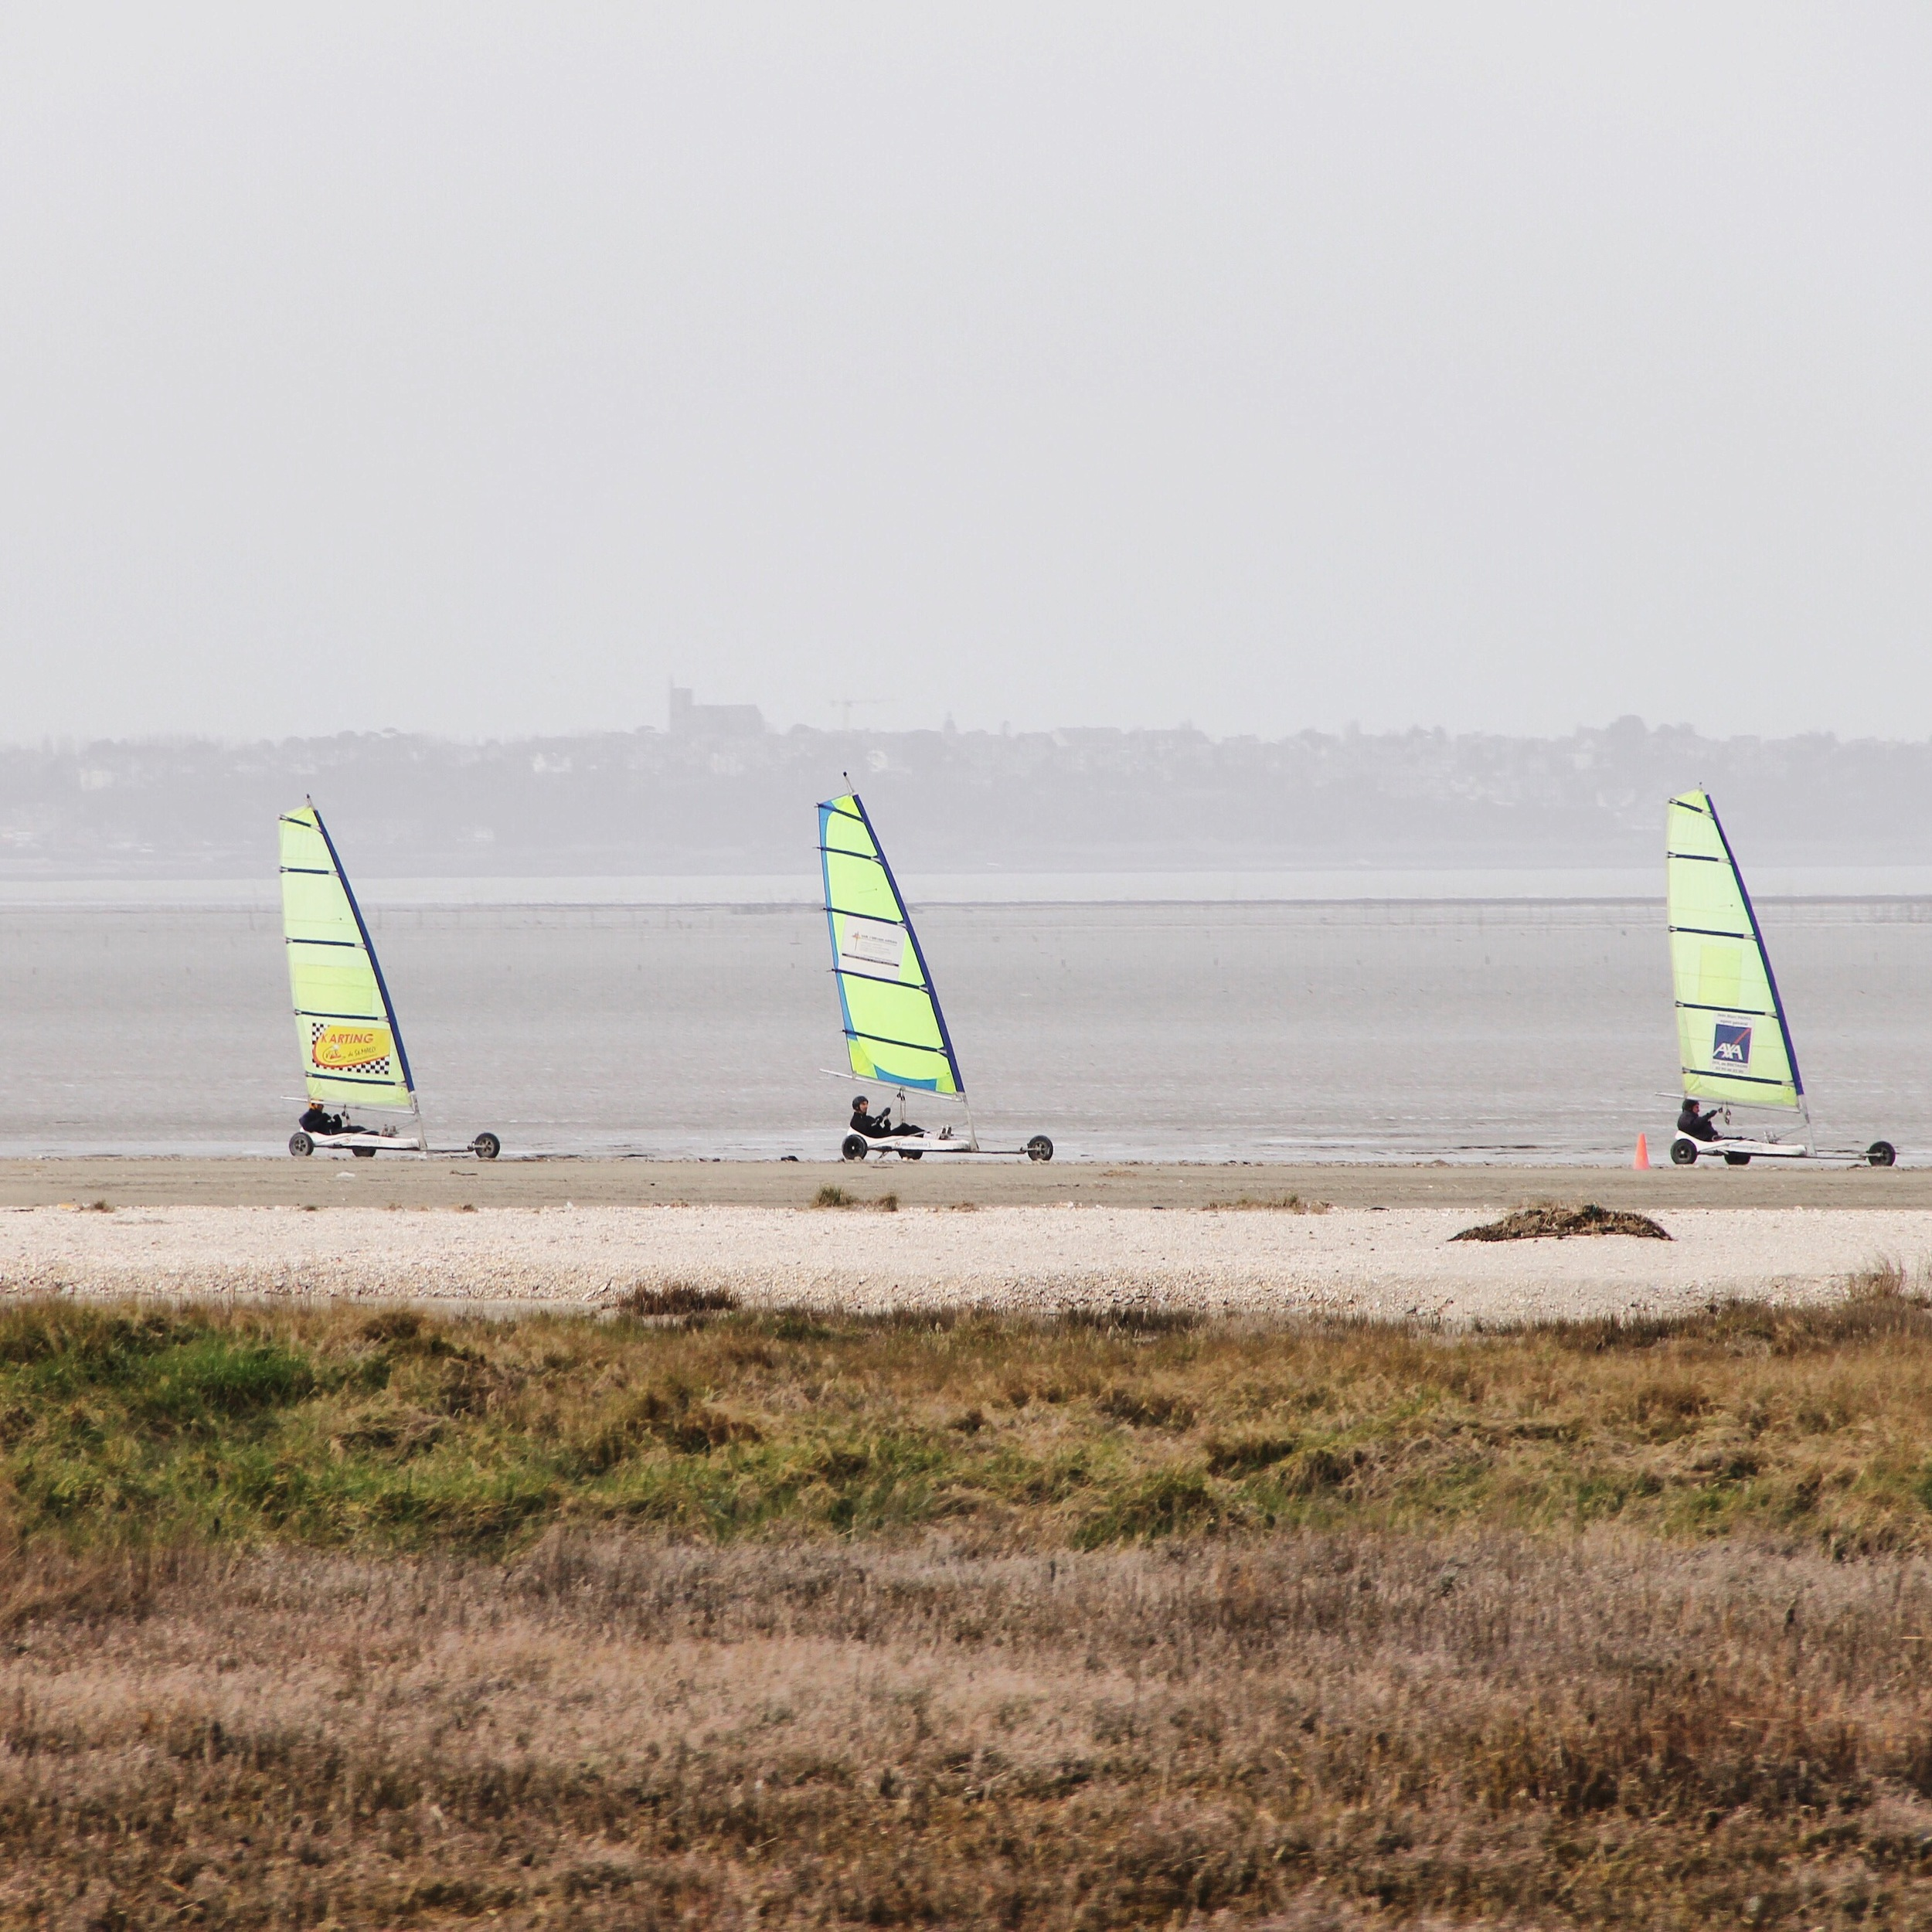 Wind boating along the coast from Mont St Michel to Cancale